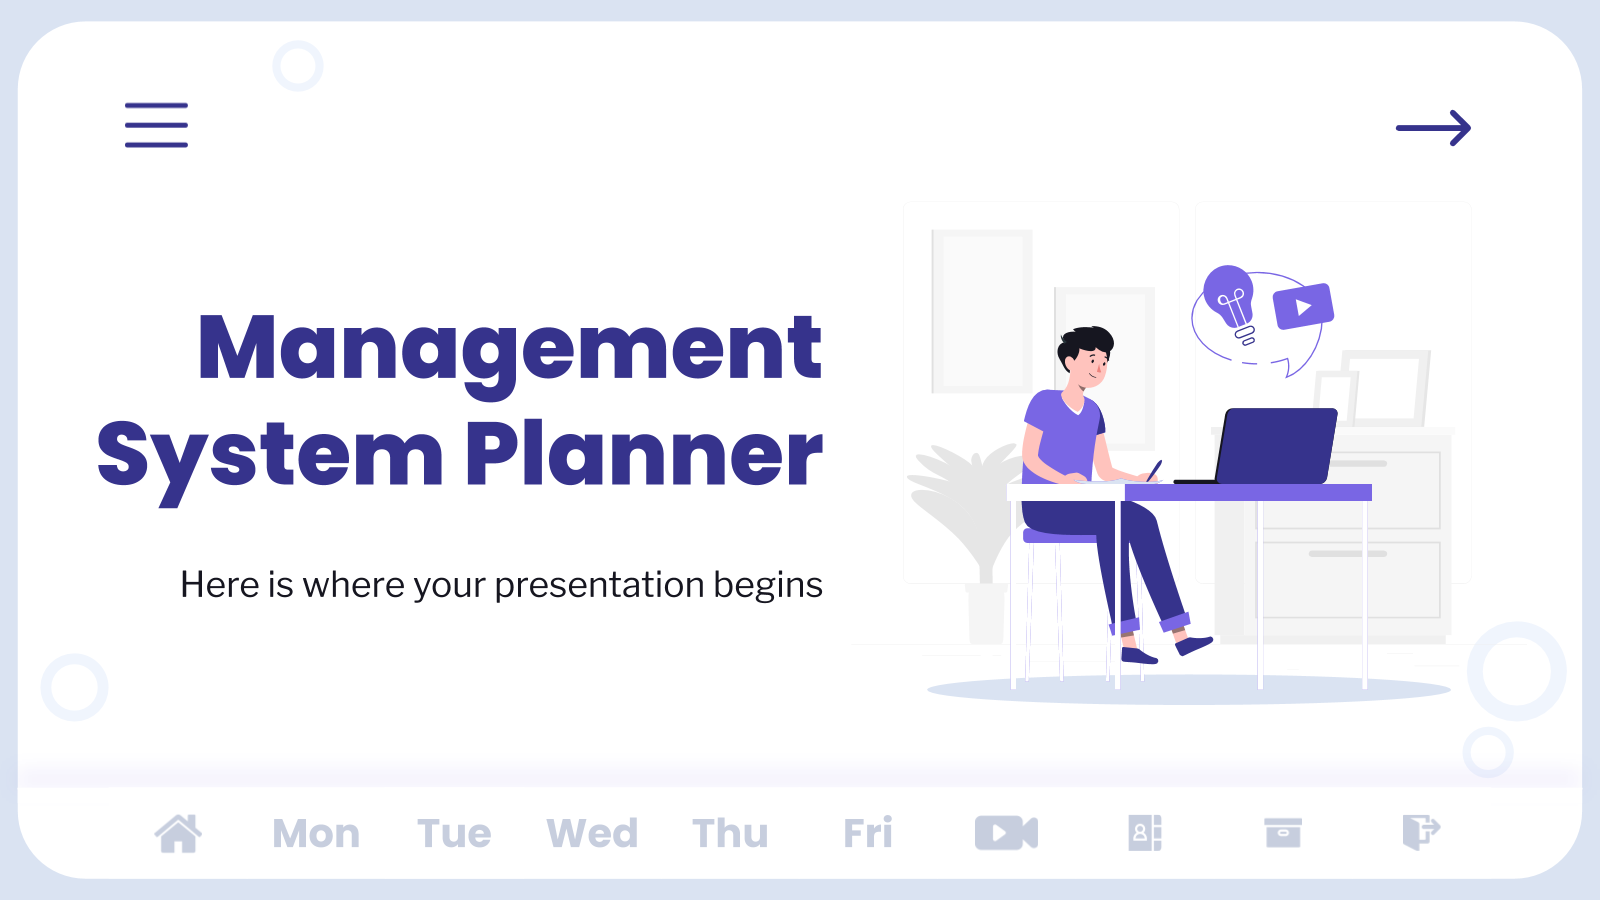 Management System Planner presentation template